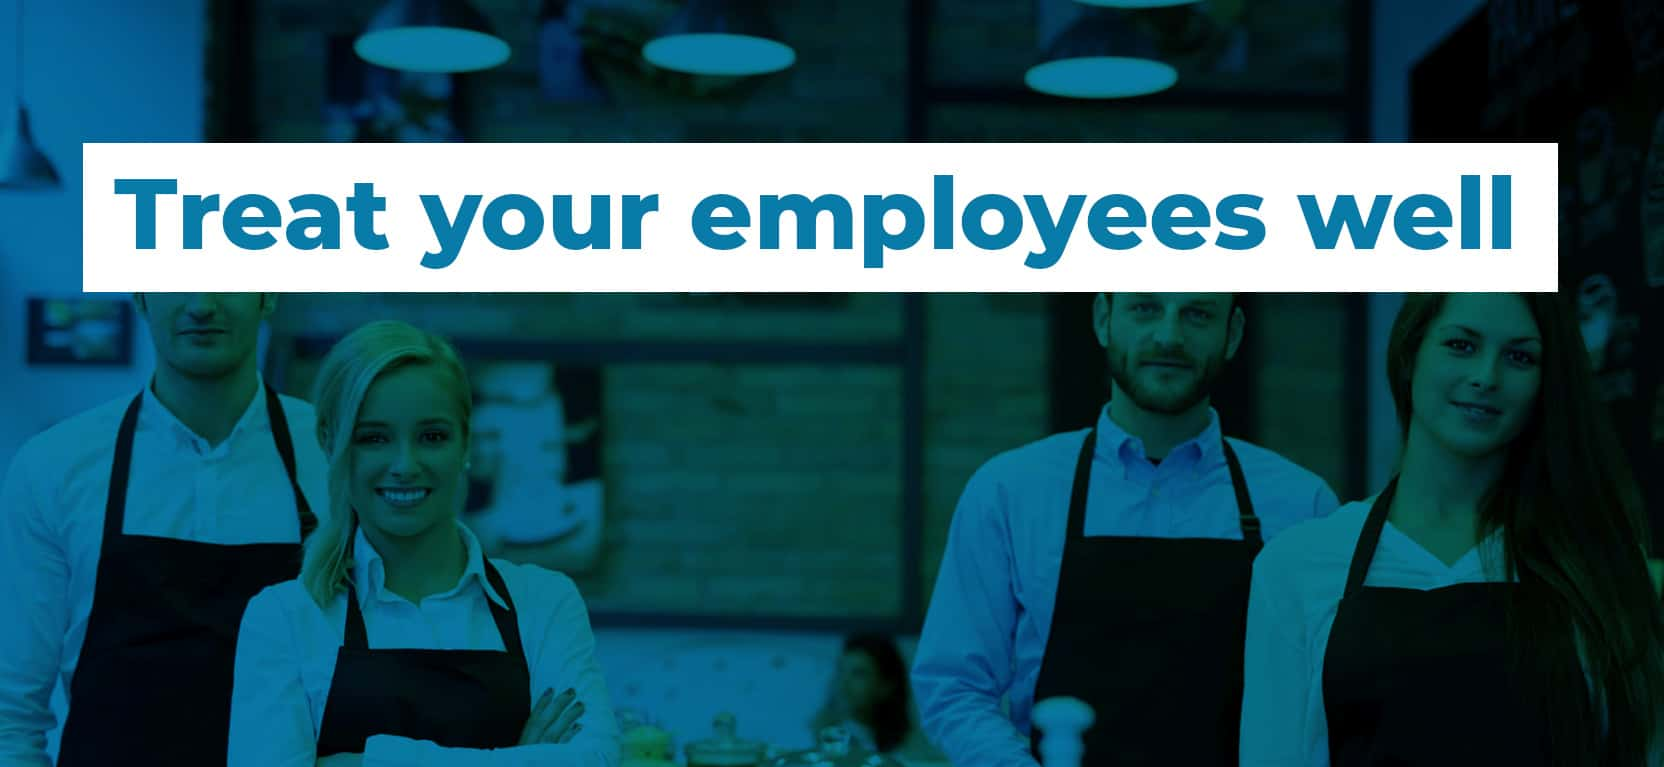 13 Treat your employees well3